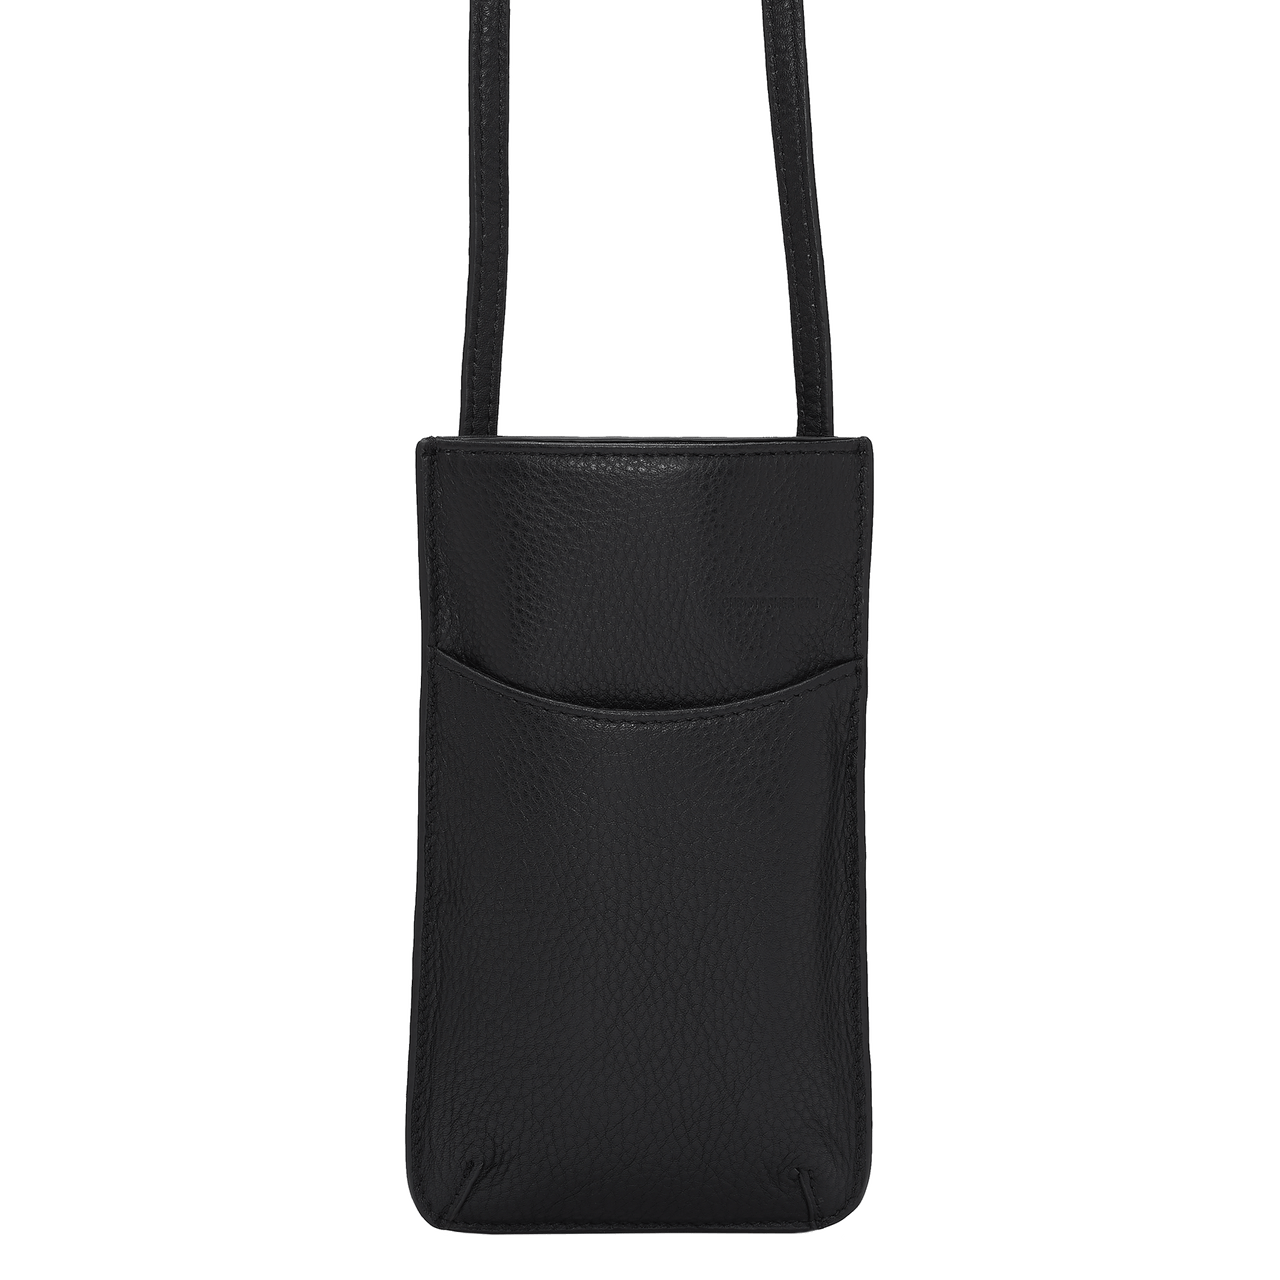 DARBY PHONE SLIP CROSSBODY - BLACK